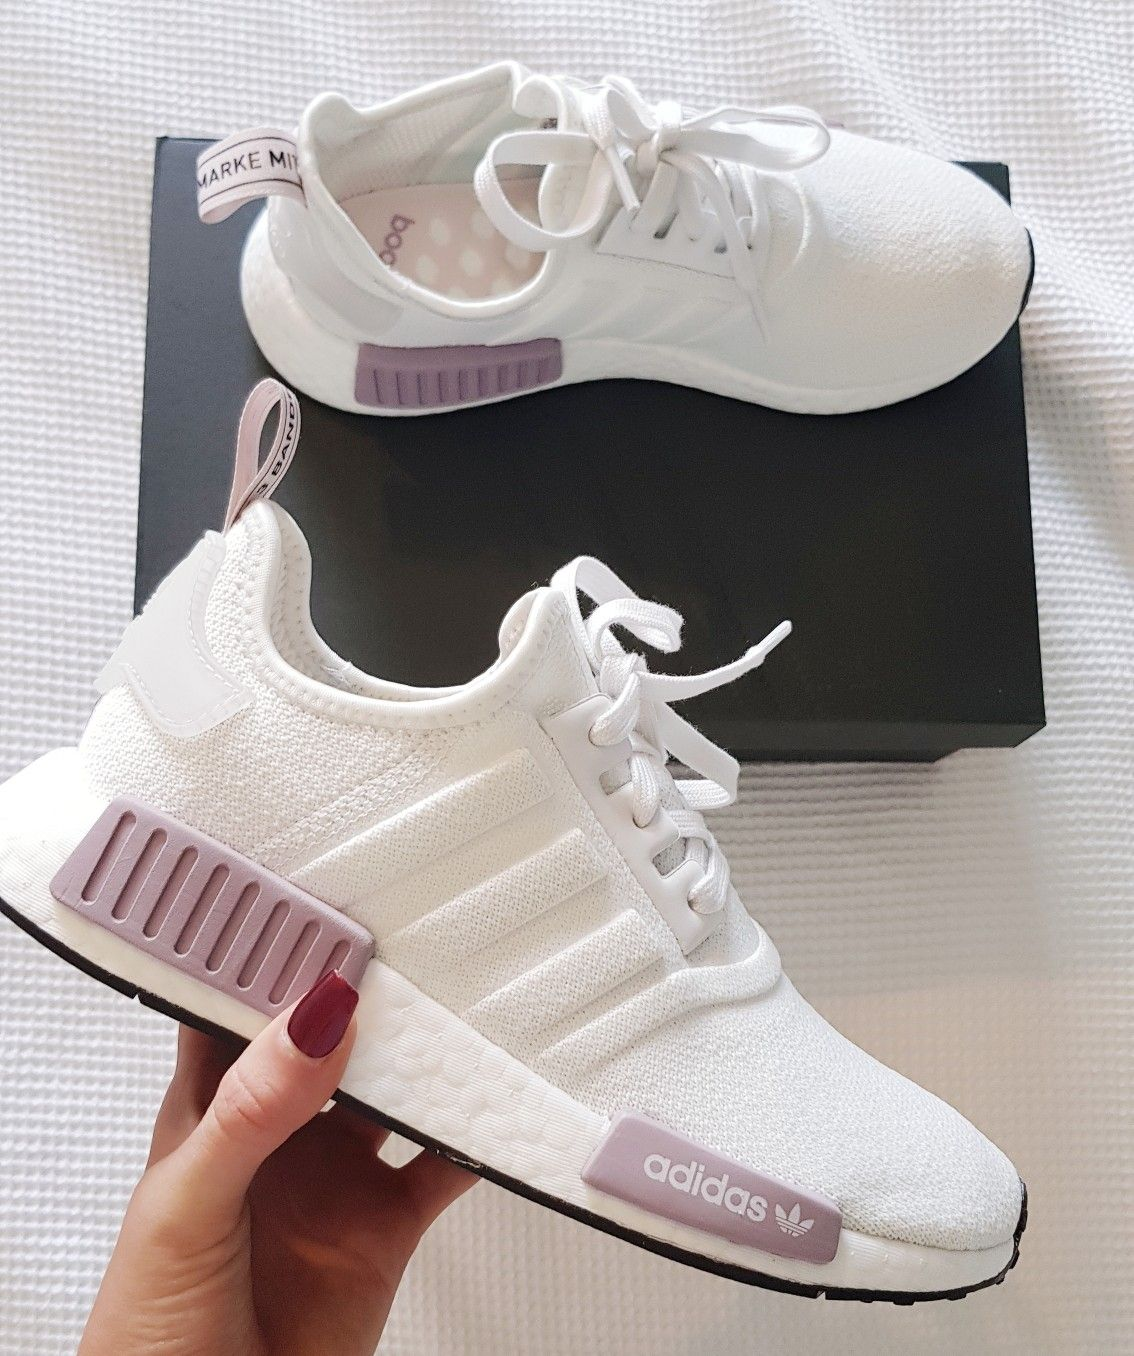 womens running shoes trainers NMD r1 white and purple pink